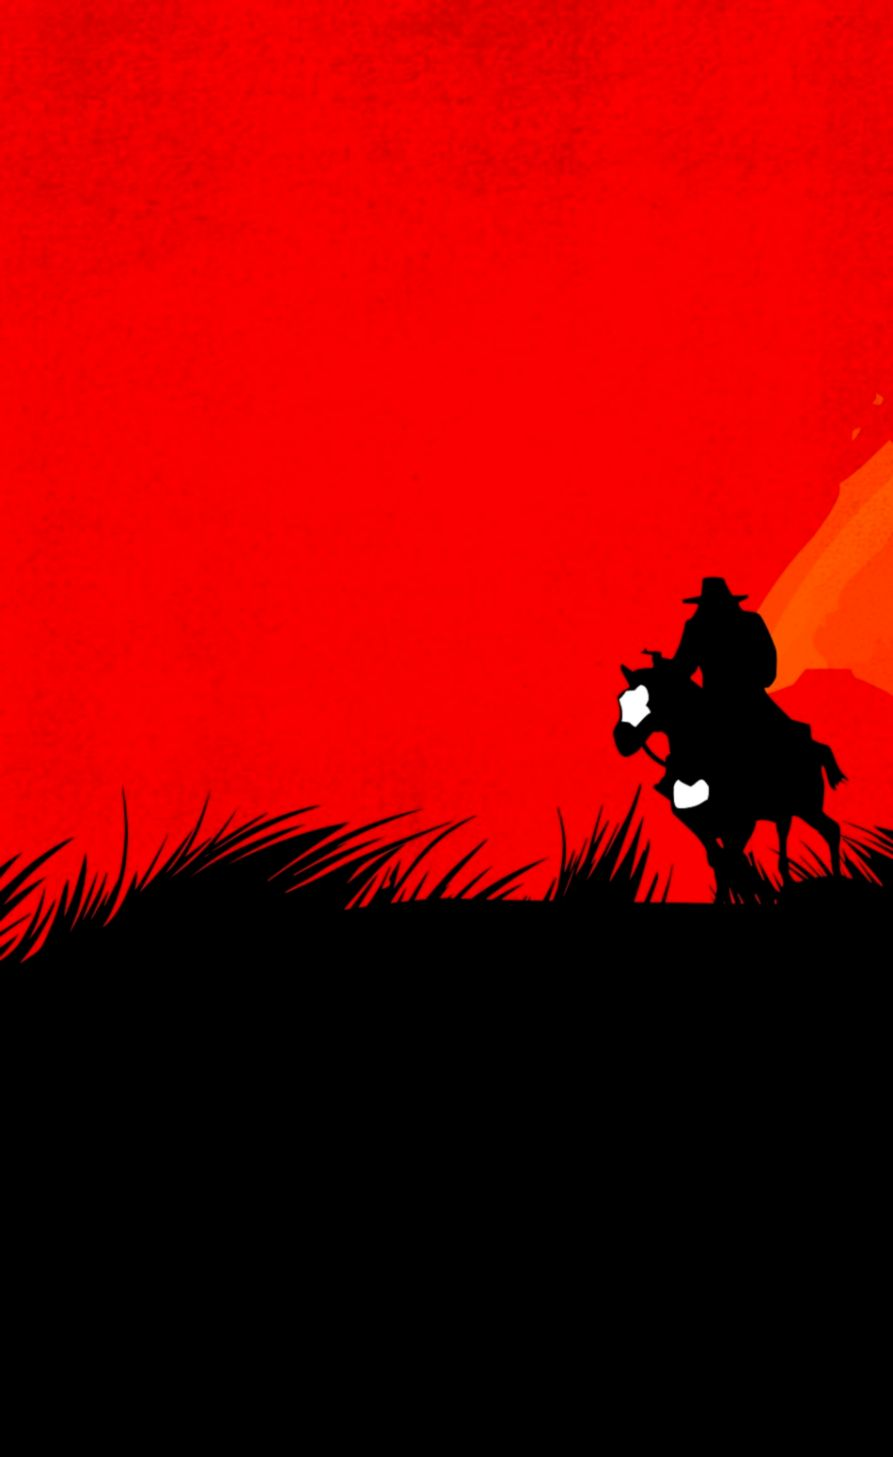 Wallpaper Iphone Red Dead Redemption 2 - wallpaper iphone